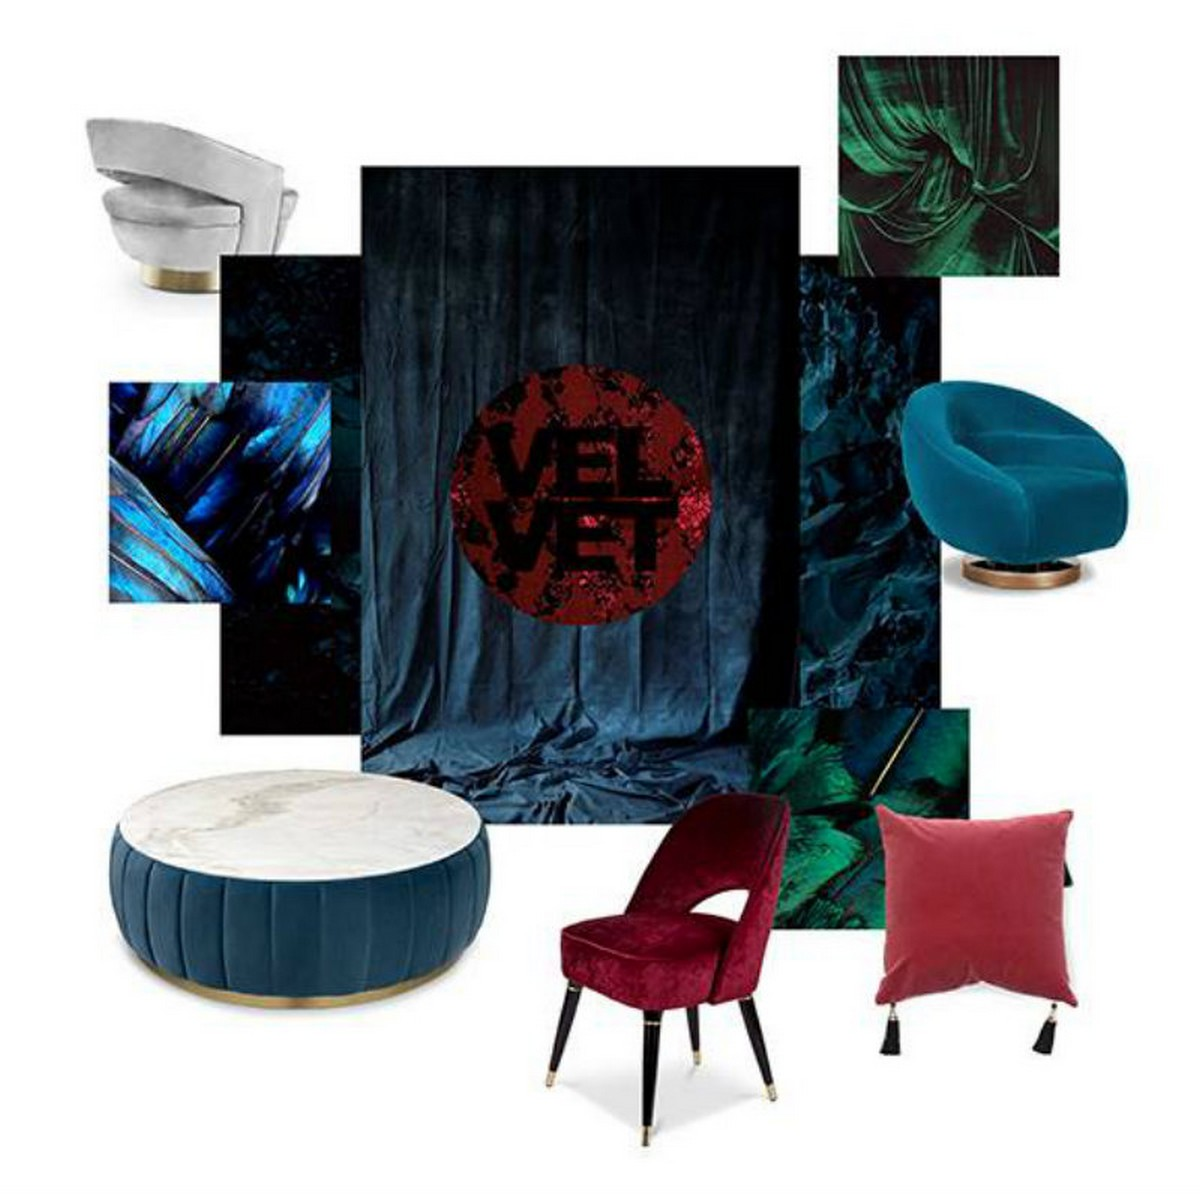 Furniture Trends By Top Luxury Brands That Will Take You to 2020! furniture trends for 2020 Furniture Trends By Top Luxury Brands That Will Take You to 2020! 12